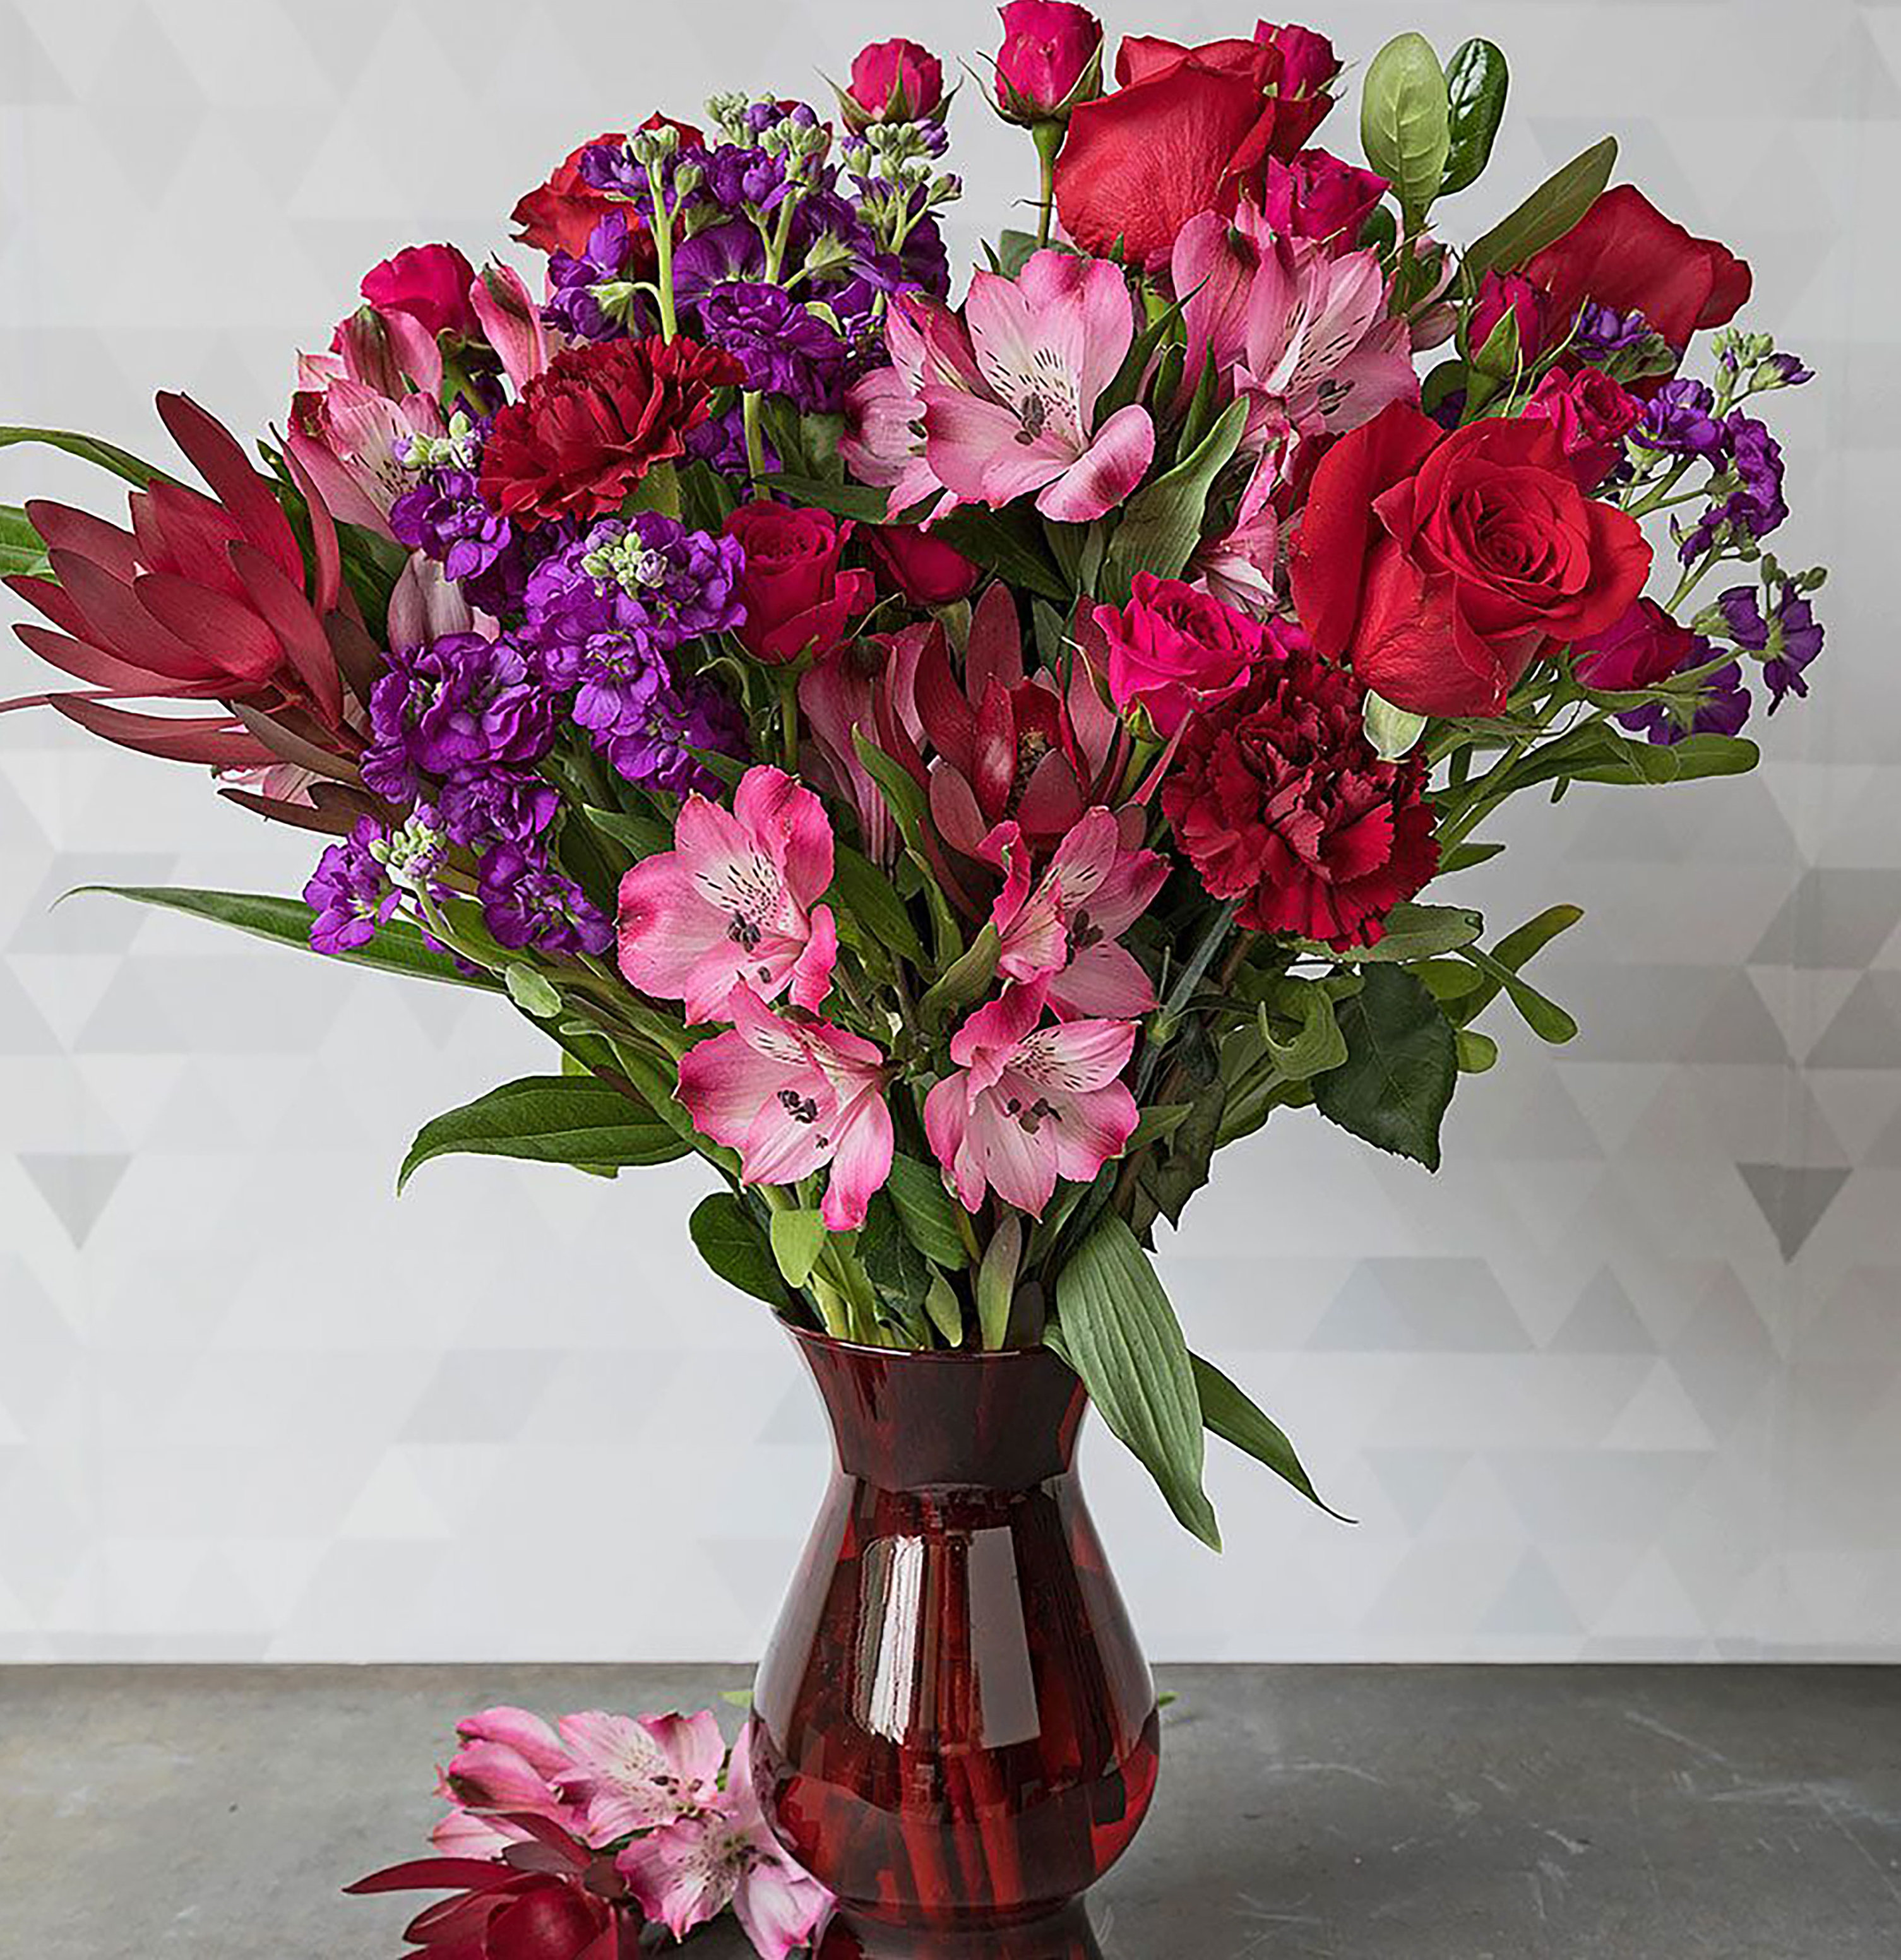 c711898bee3940 40 of the Best Valentine s Day Gifts for Your Girlfriend in 2019